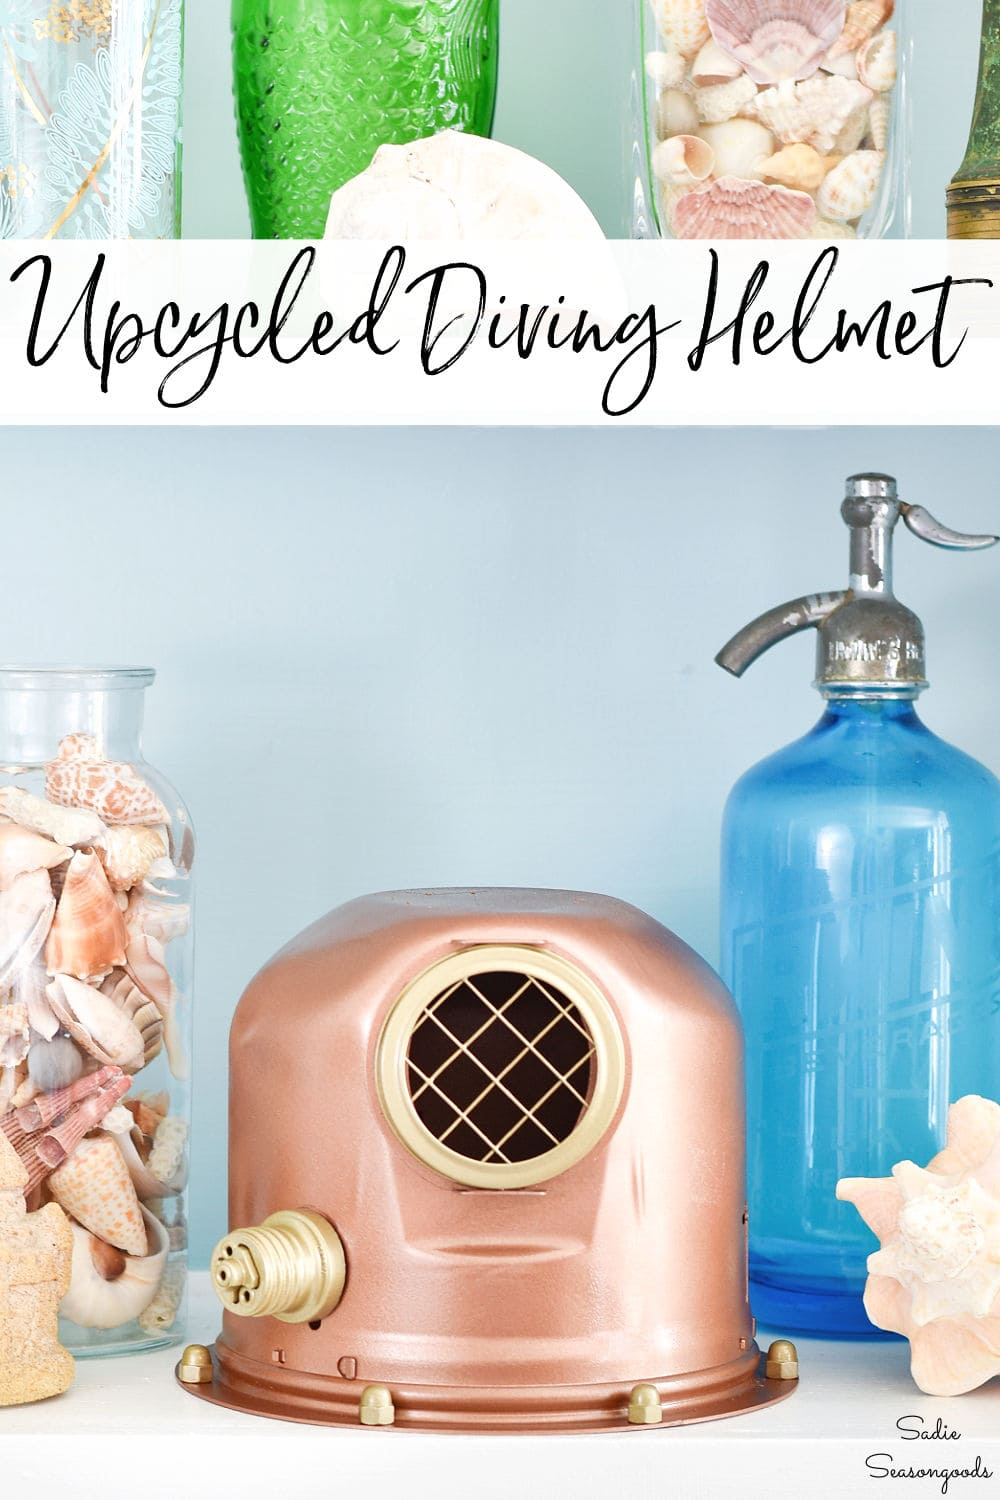 upcycling idea for an antique diving helmet